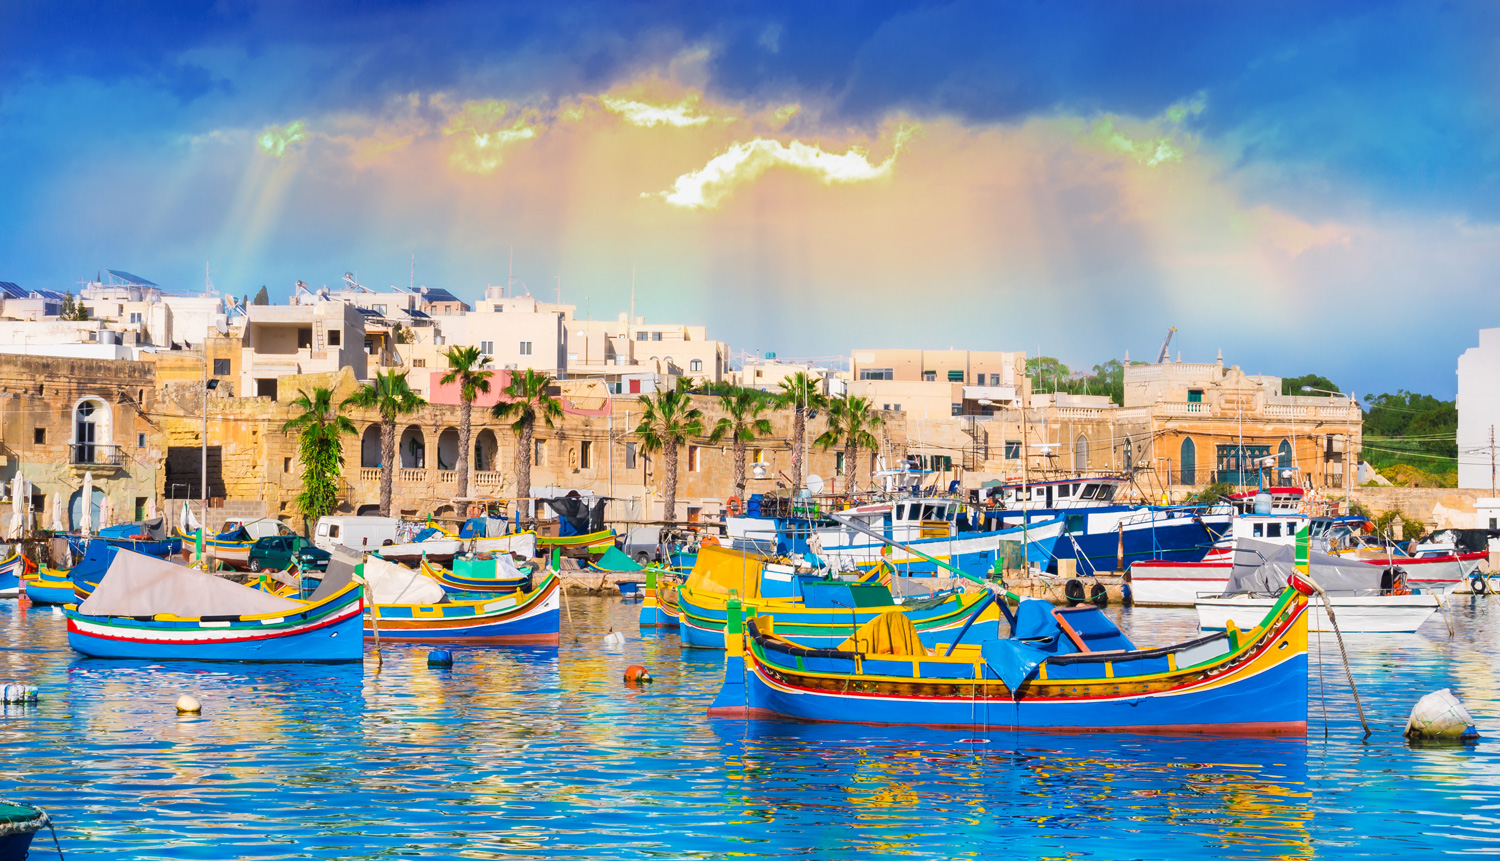 Marsaxlokk harbor, Malta, illuminated by sunset light